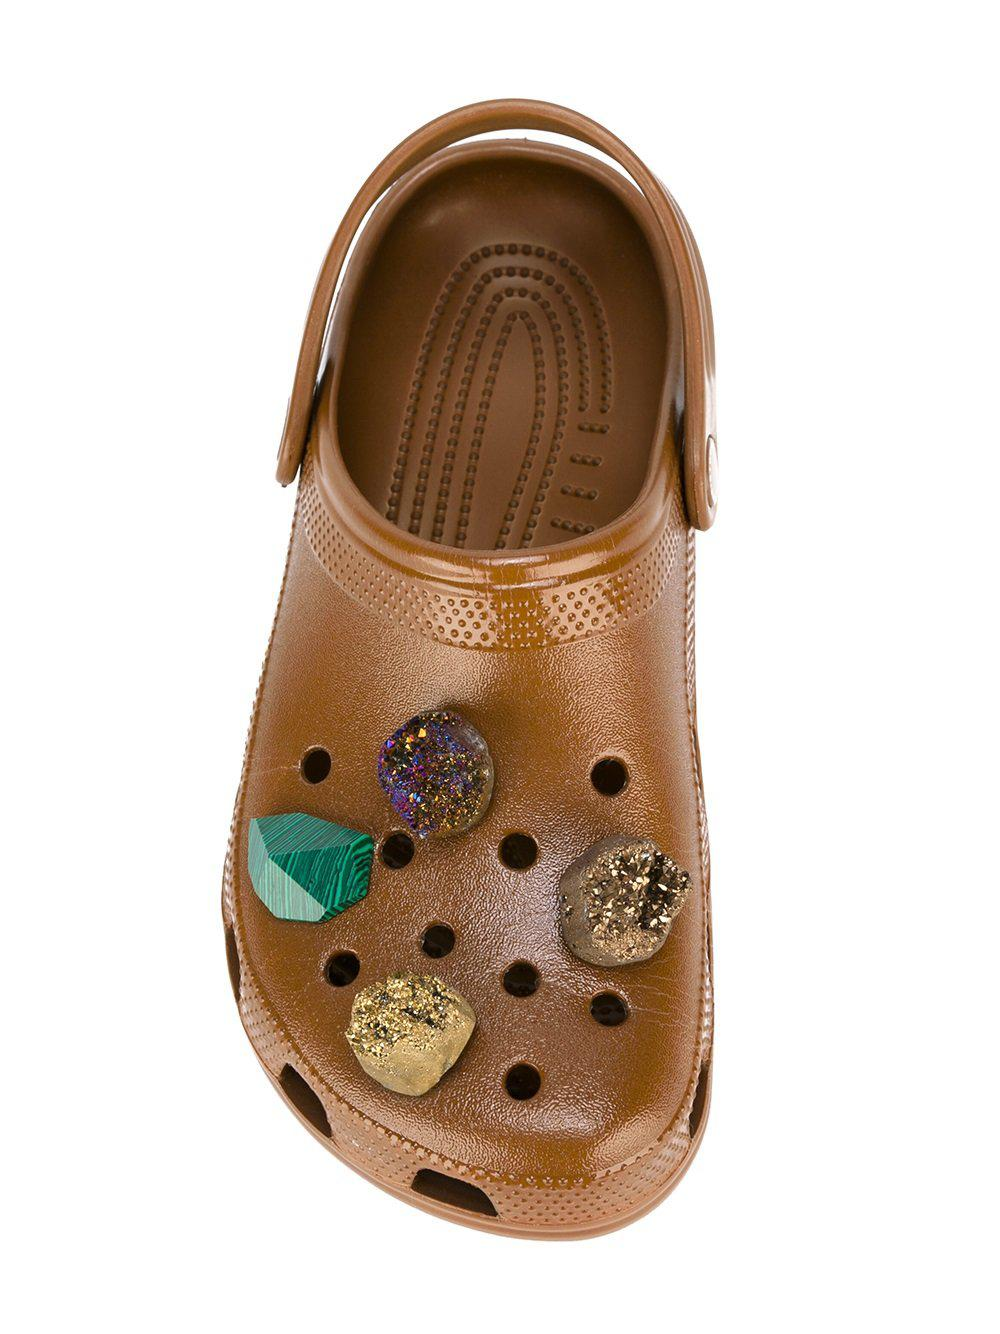 72d42984eeced Lyst - Christopher Kane Stone Embellished Crocs Clogs in Brown